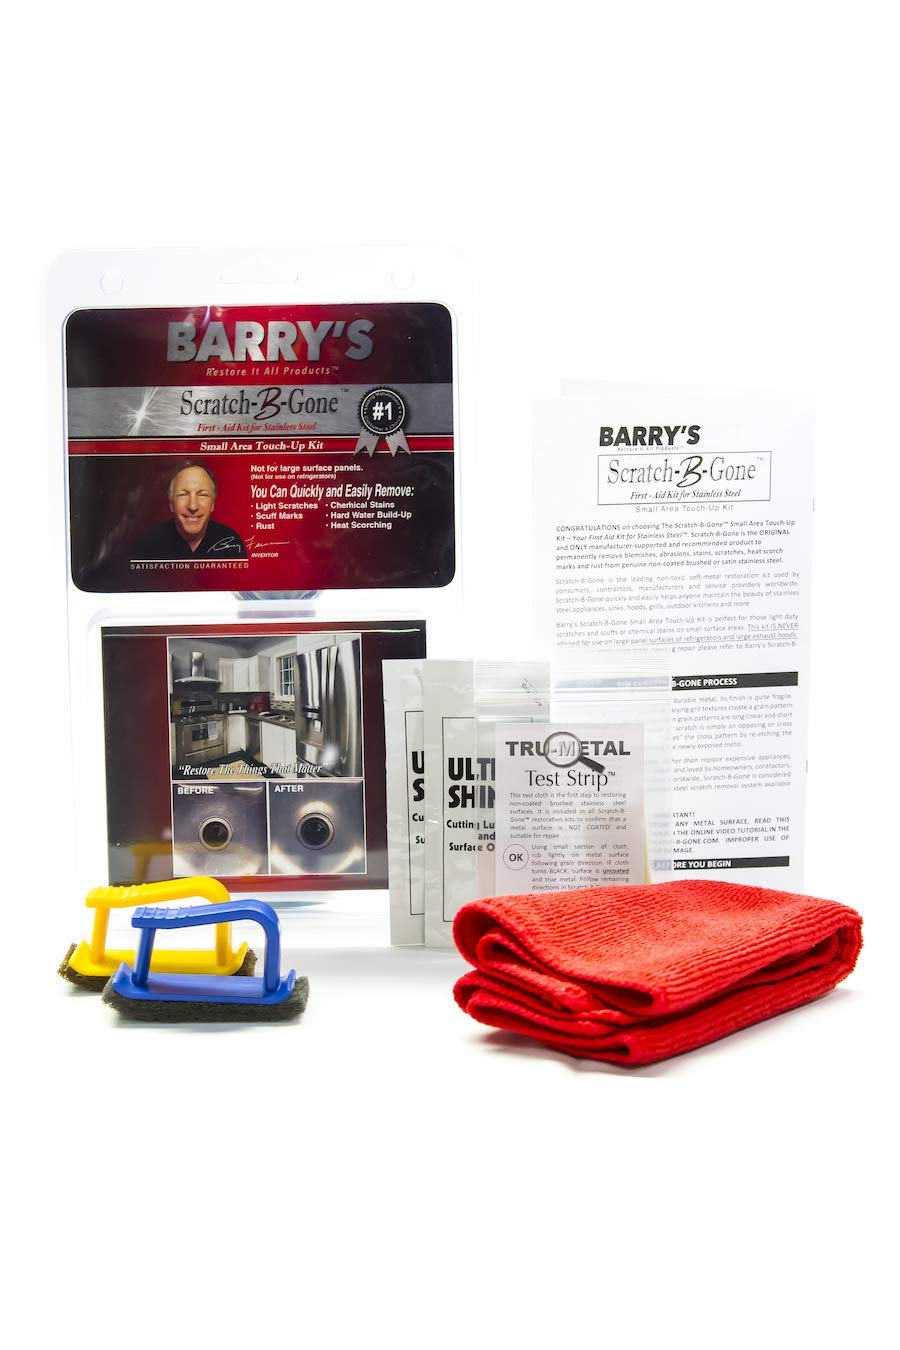 Barry's Restore It All Products - Scratch-B-Gone Small Area Touch-Up Kit by Barry's Restore It All Products